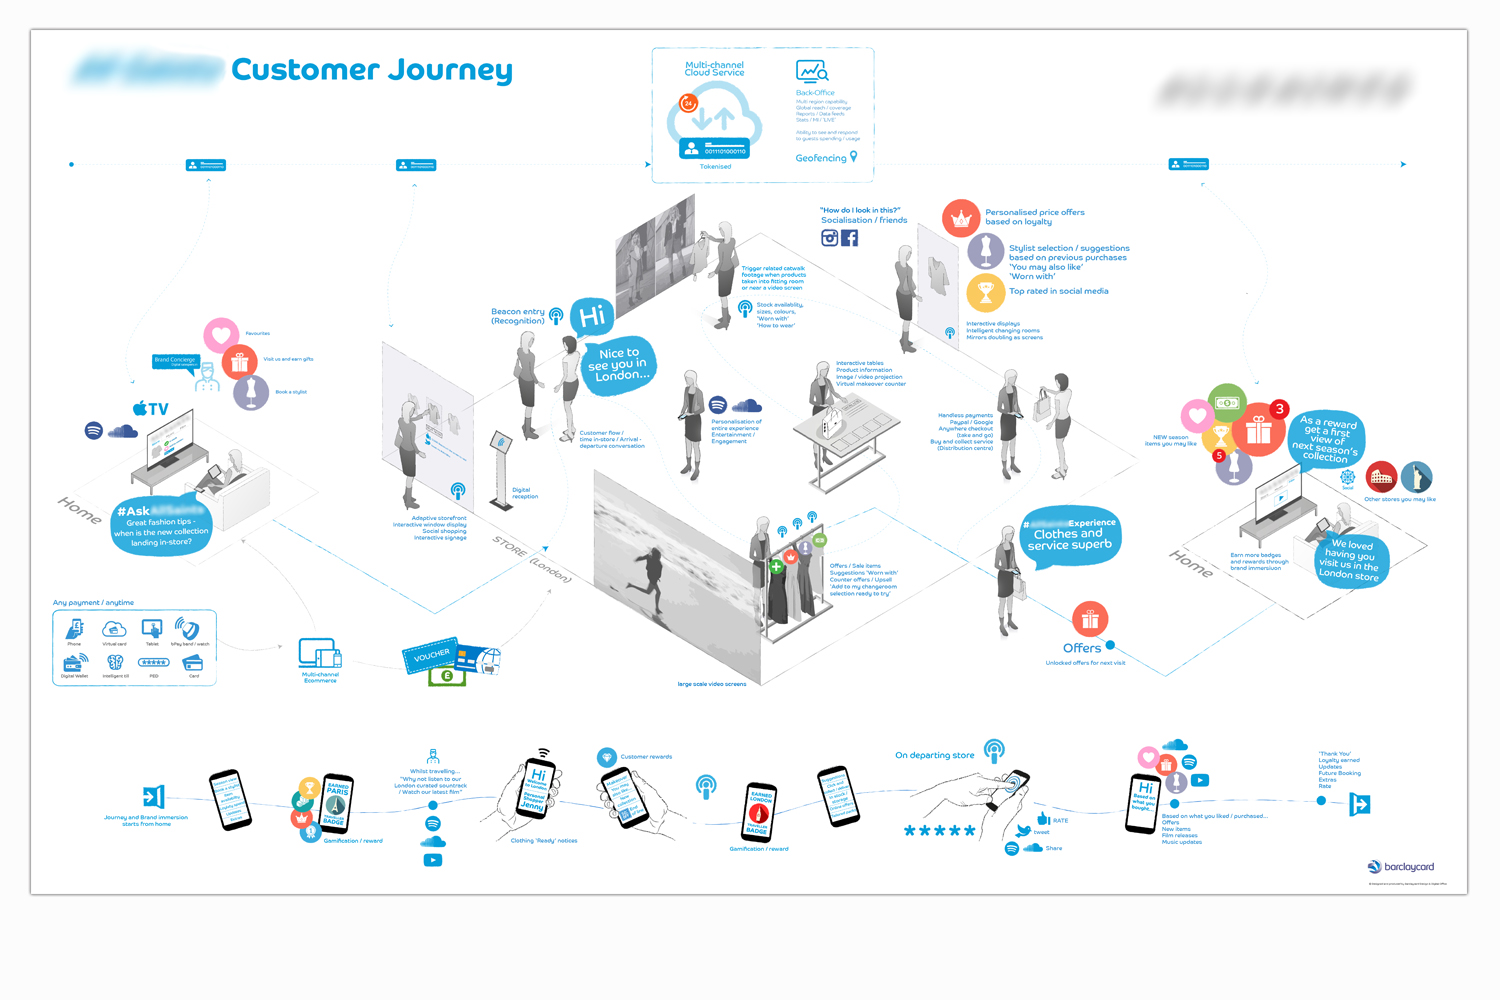 Retail focused omnichannel service journey